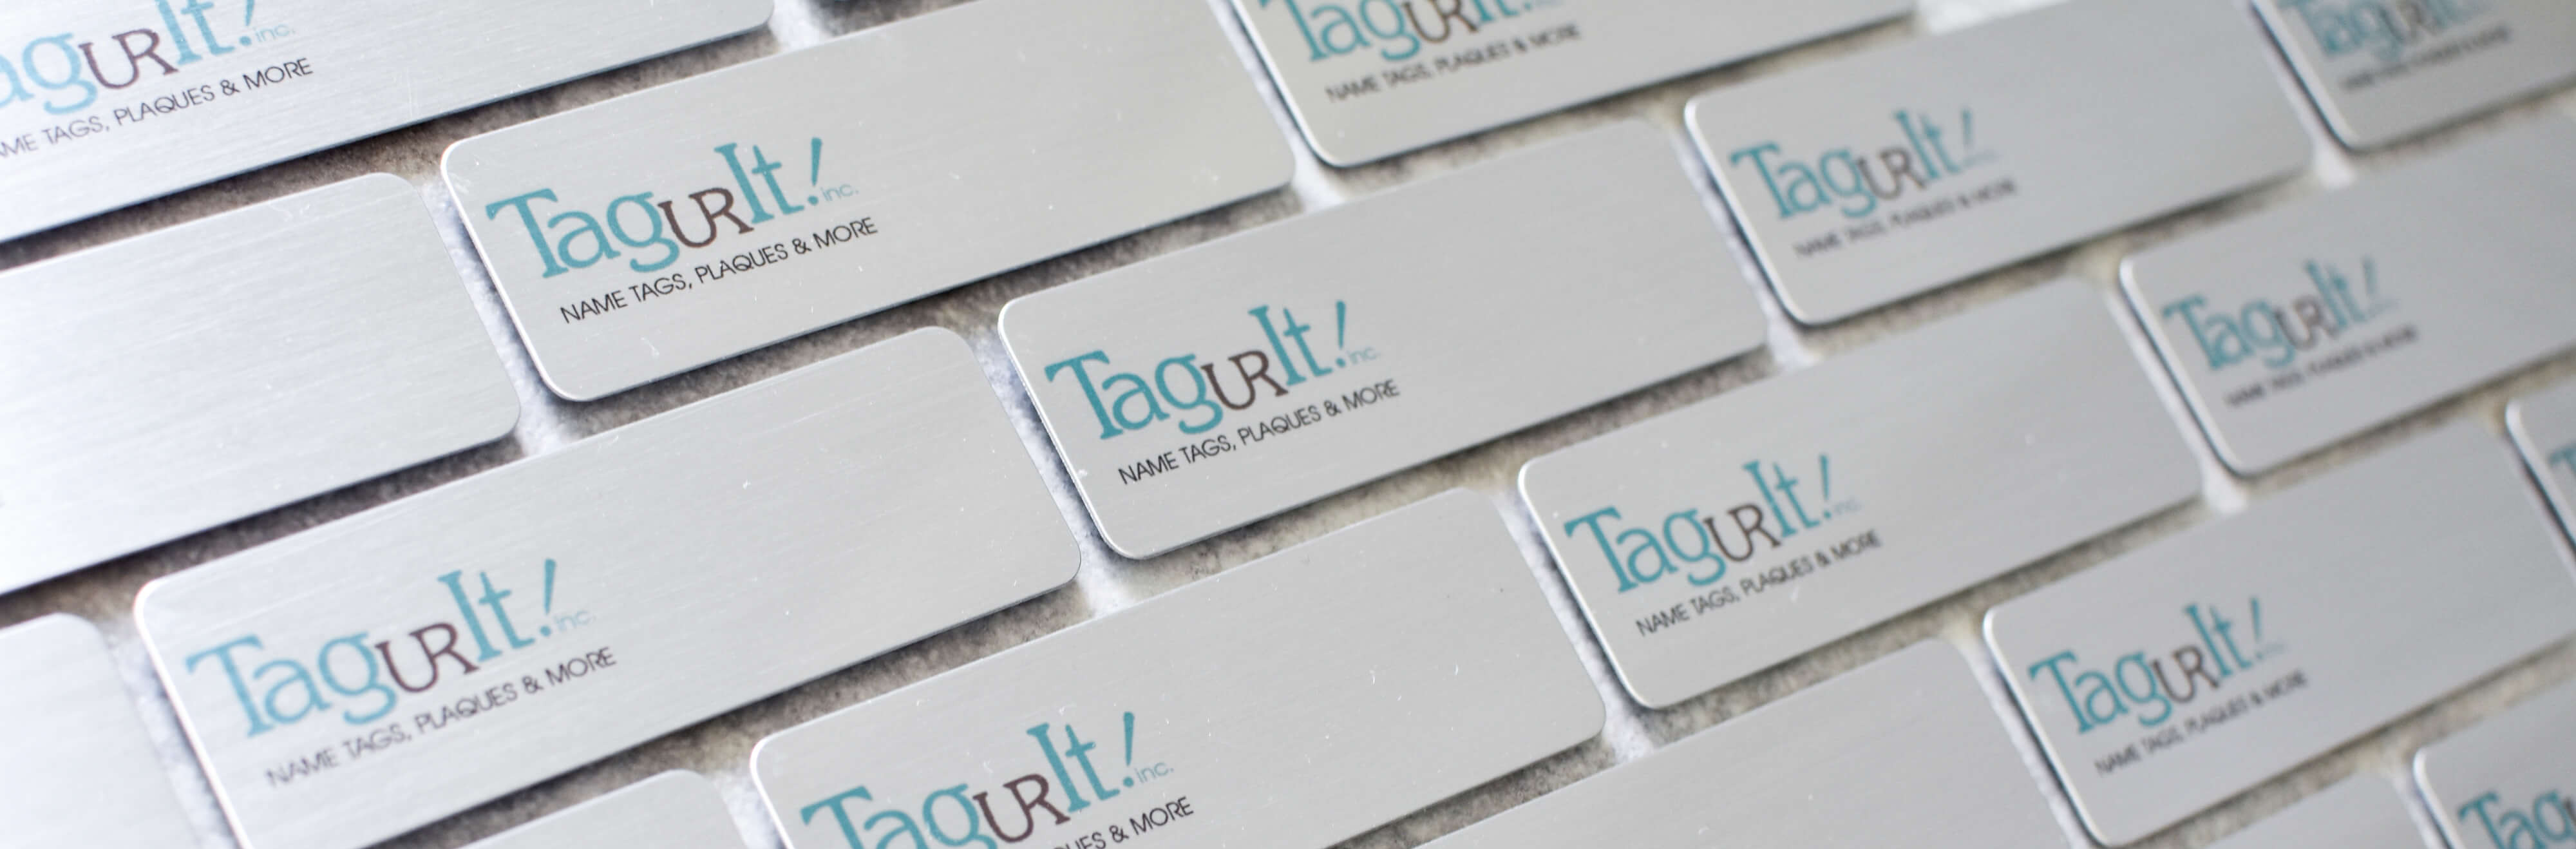 Tag ur it inc name tags and recognition awards name tags and recognition awards jeuxipadfo Images